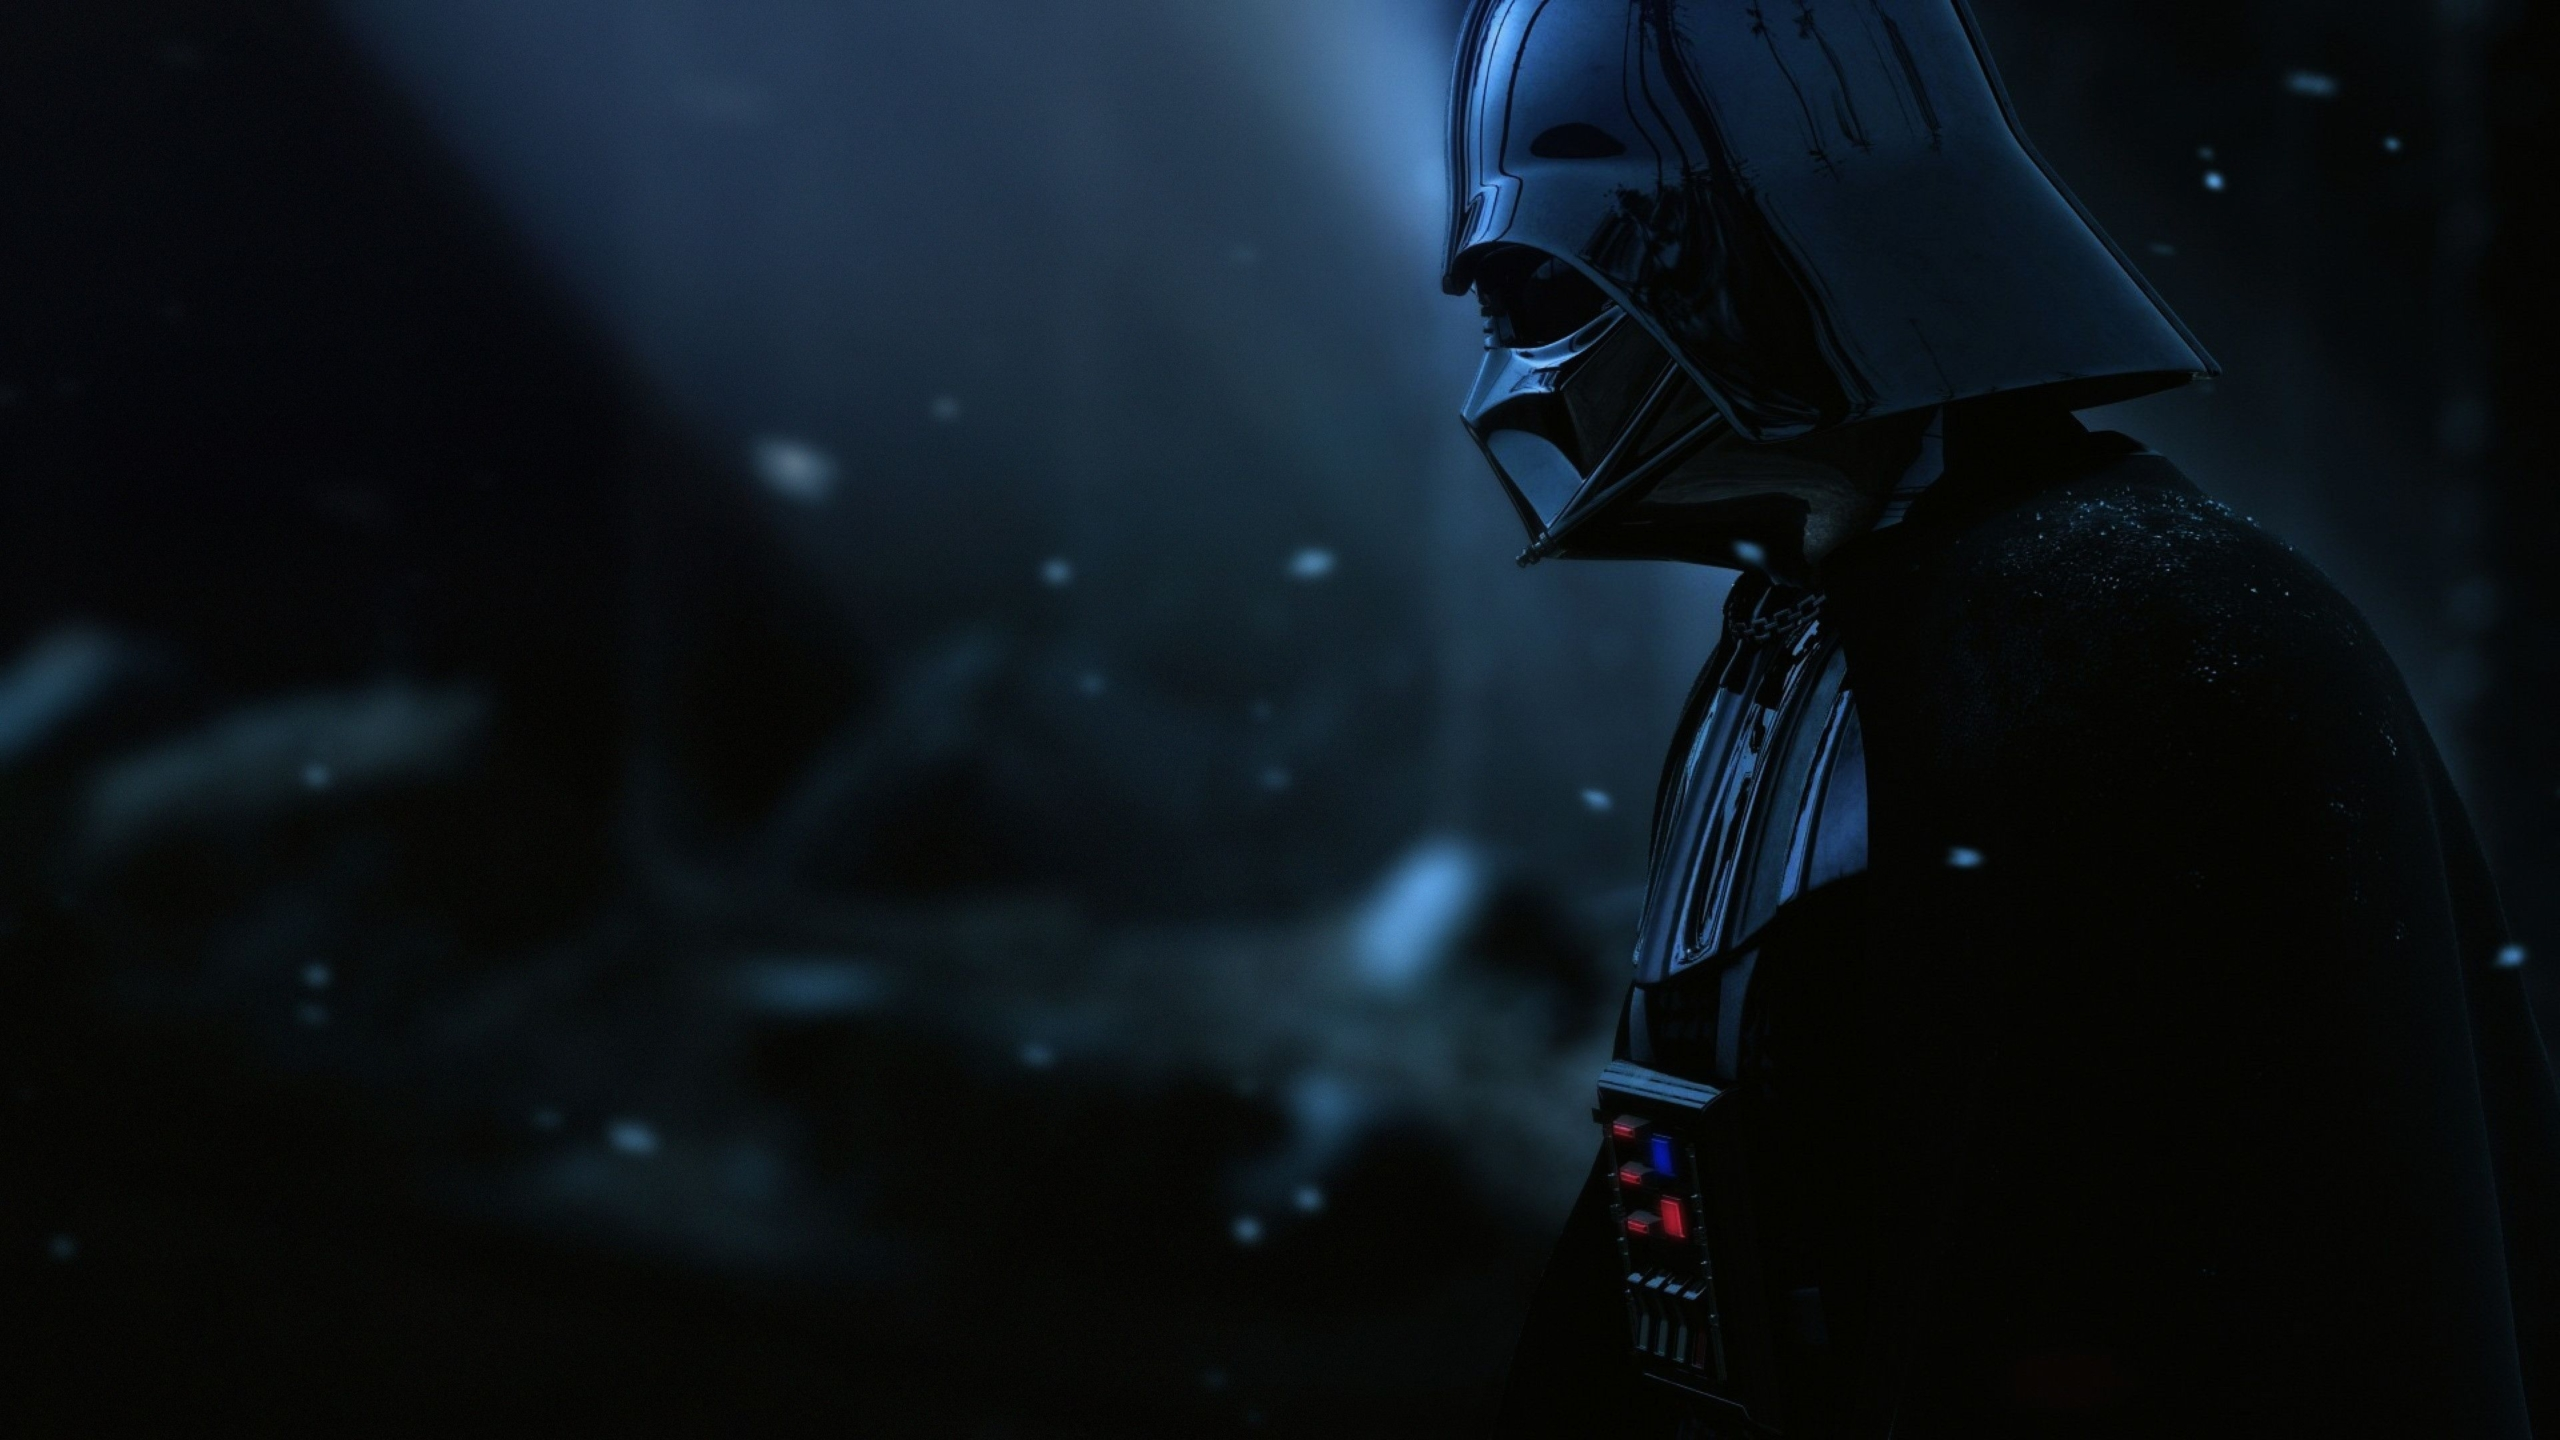 How to Create Your Own wallpapers Darth Vader Wallpaper